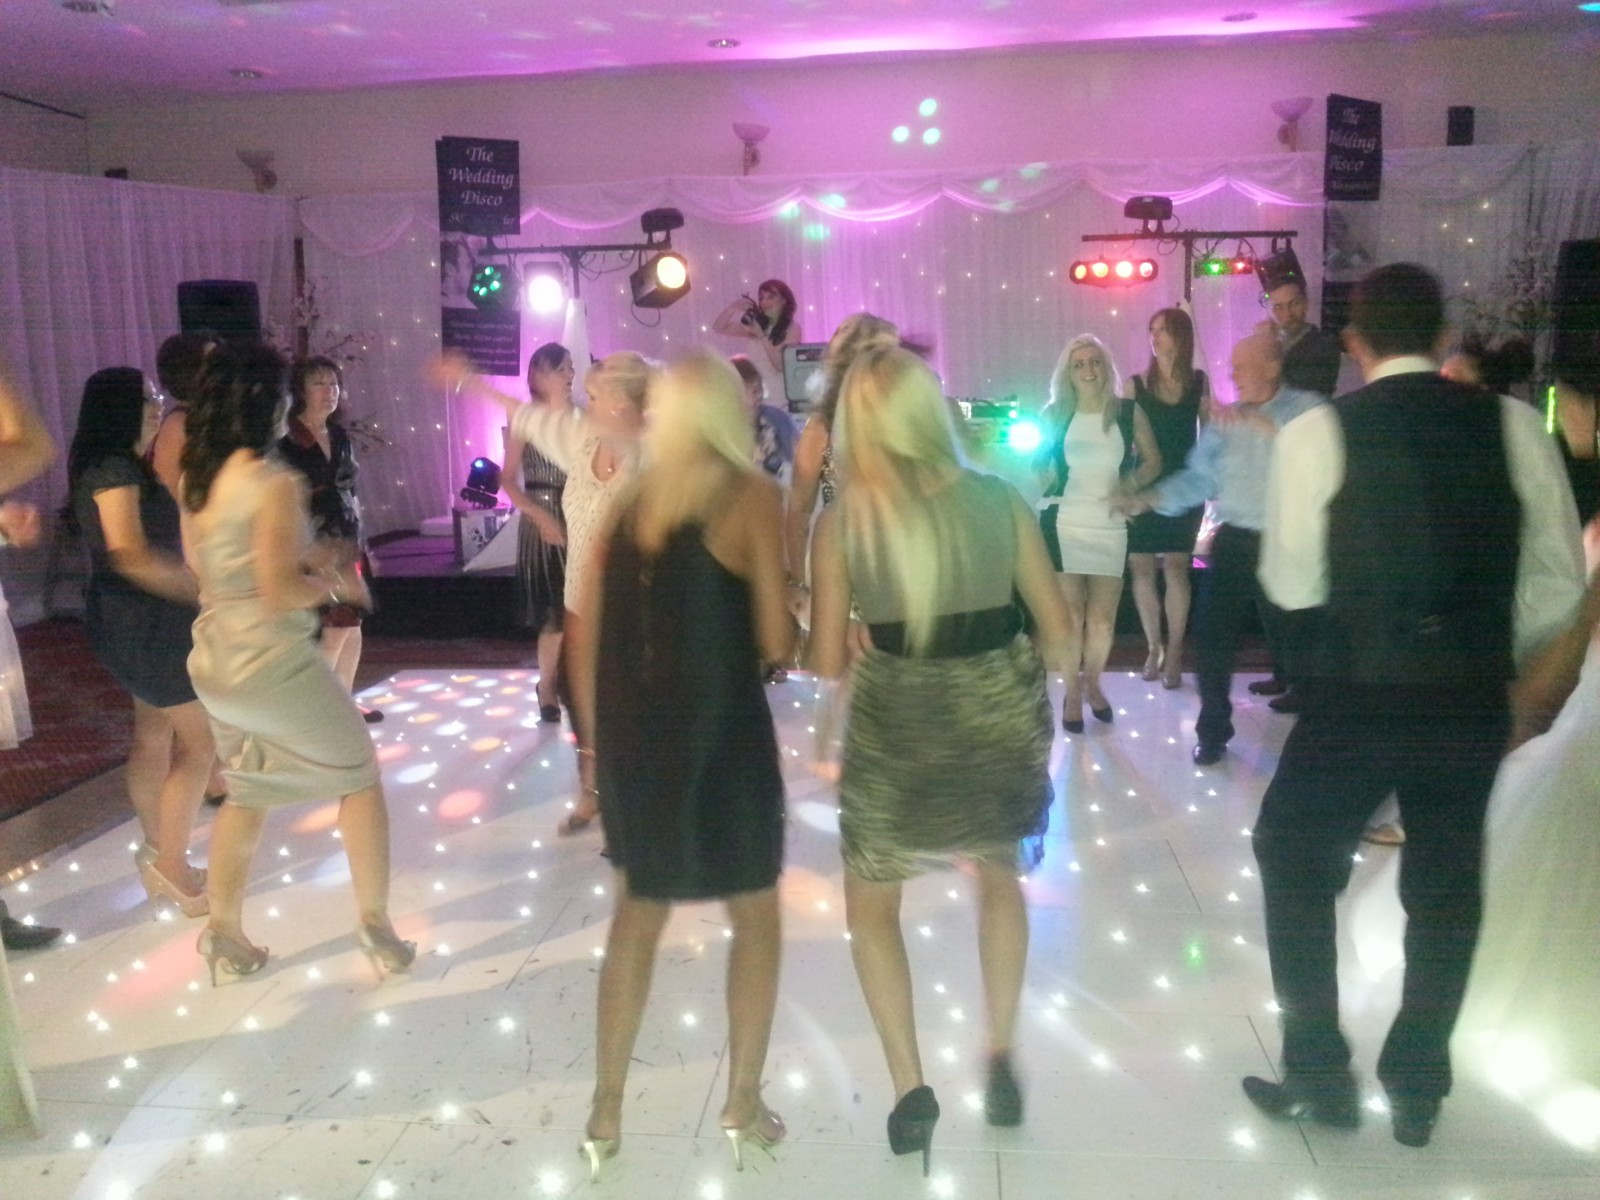 Gallery - crowd shot starlite dance floor the wedding disco -04-25 21.48.38